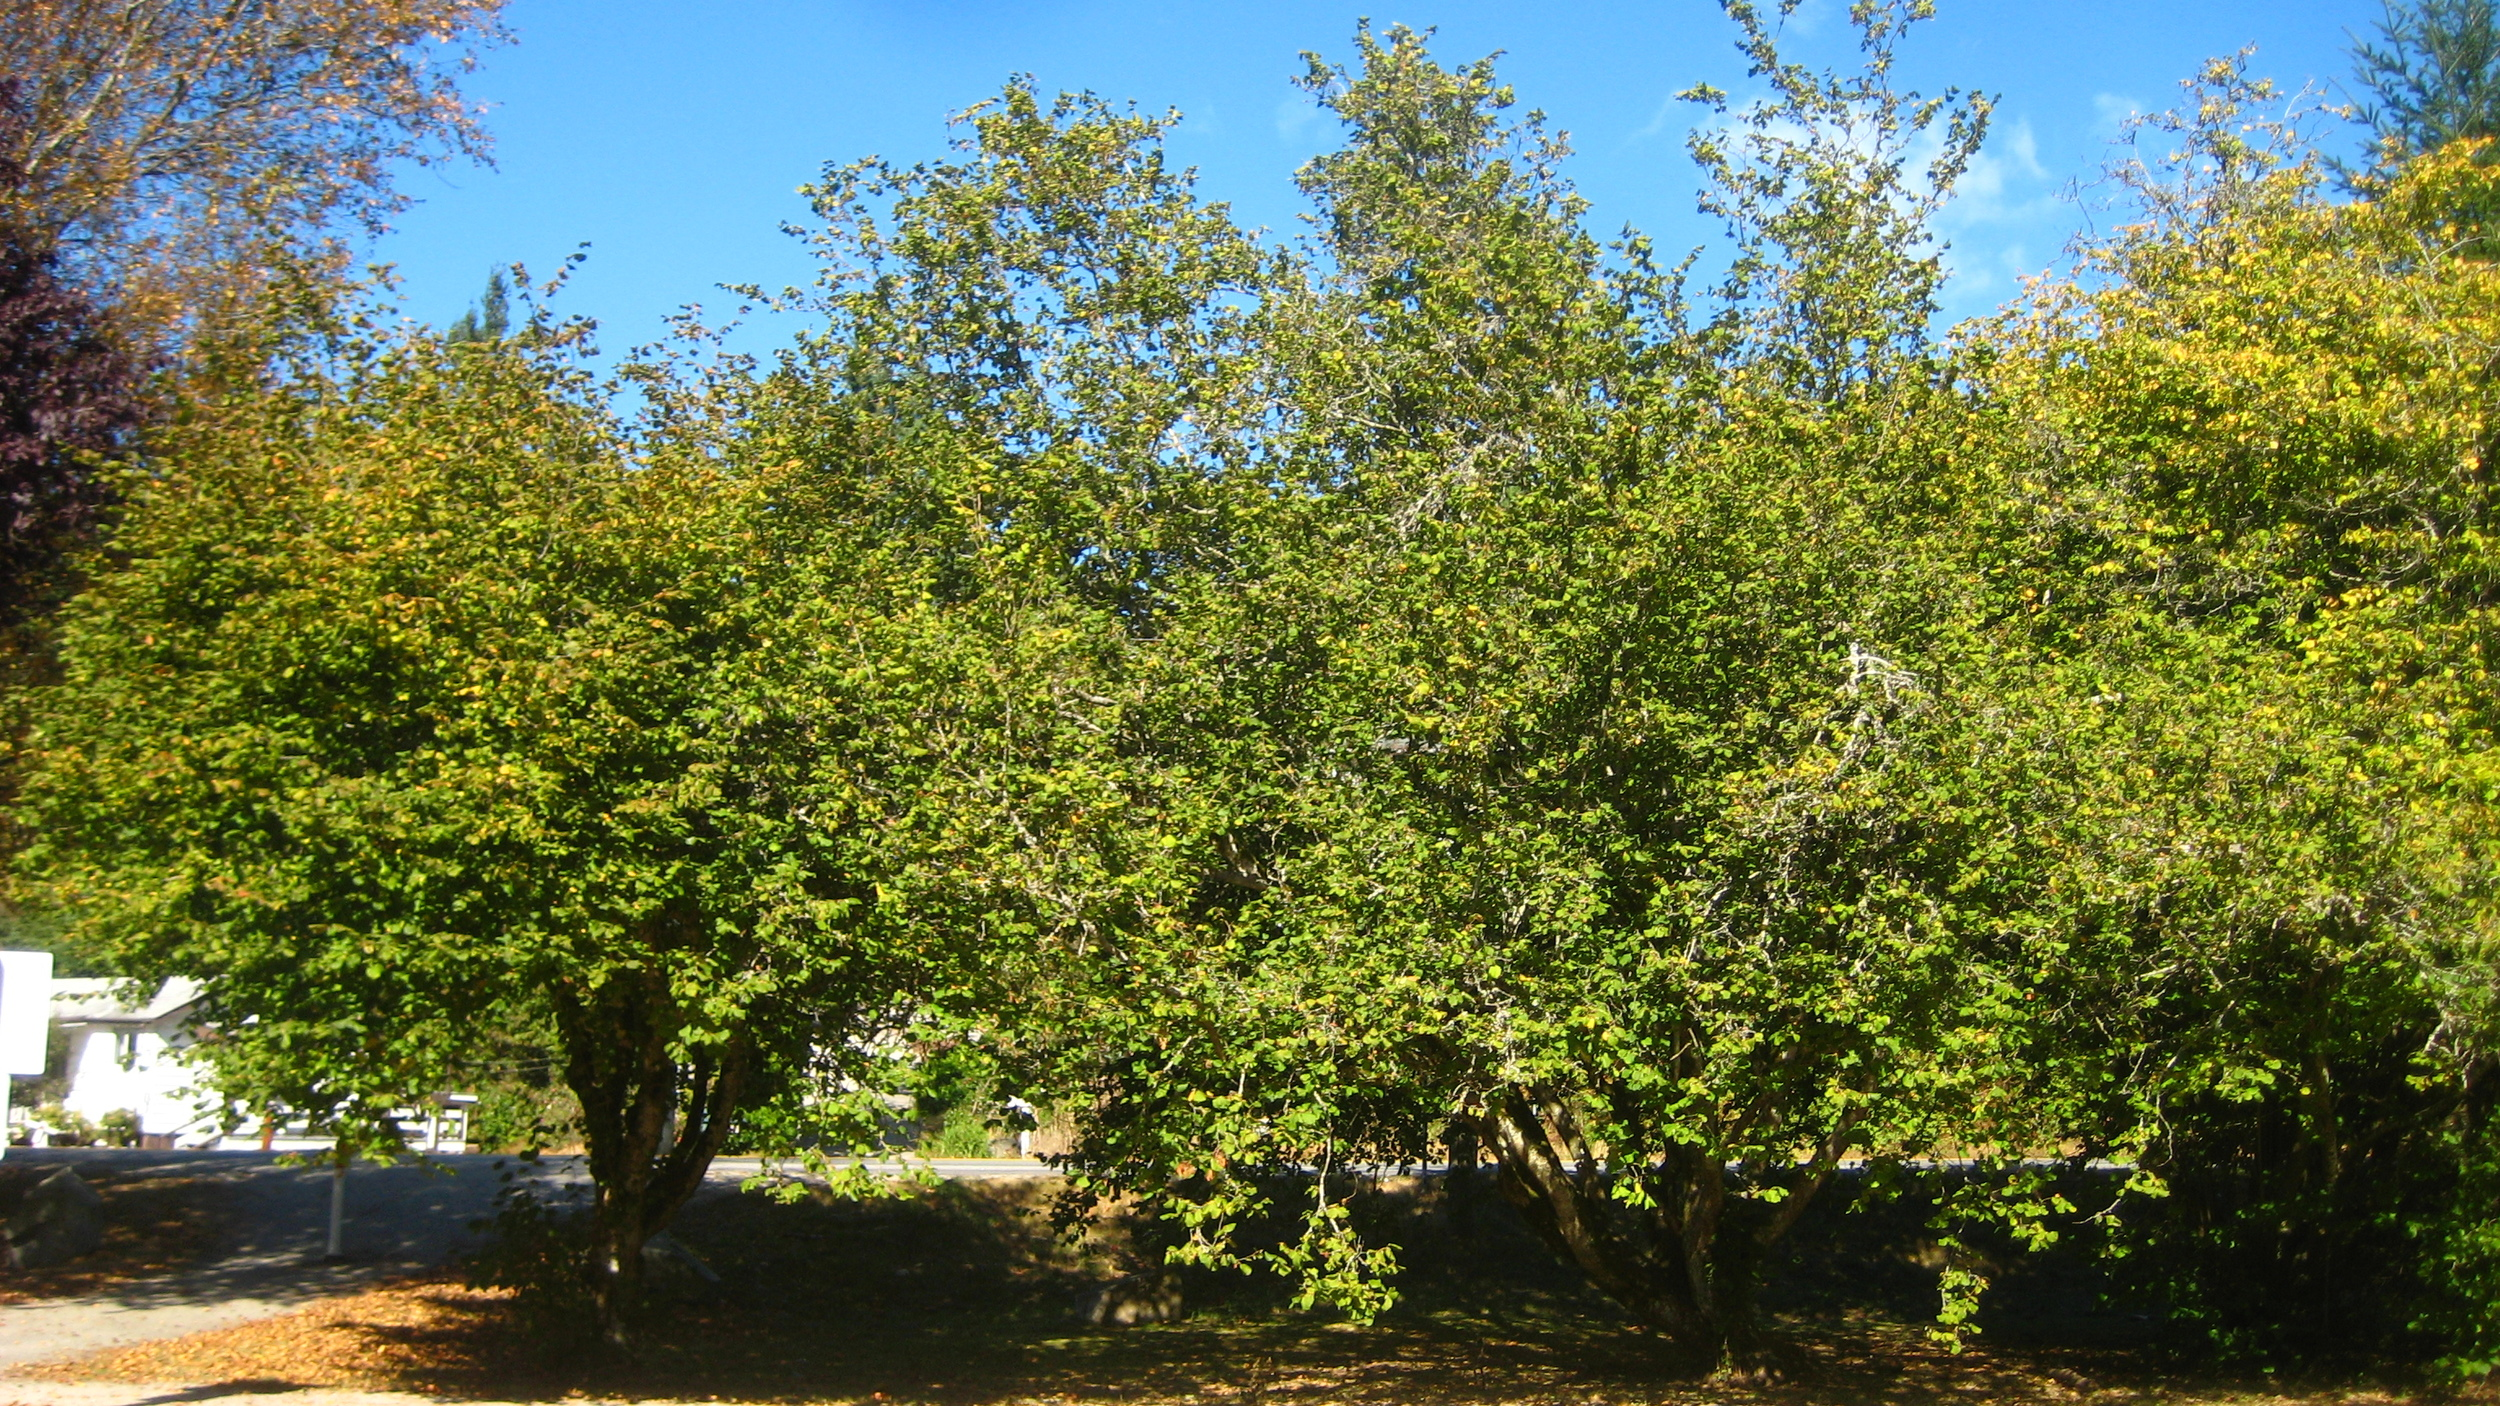 Hazel nut trees.